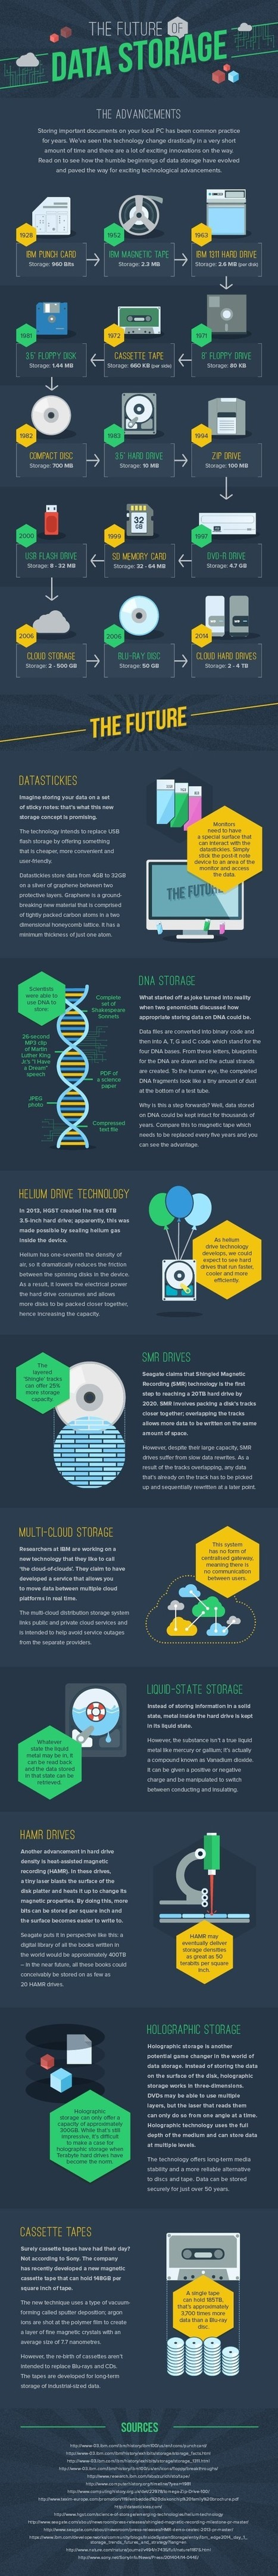 The Future of Data Storage [Infographic] | digital divide information | Scoop.it